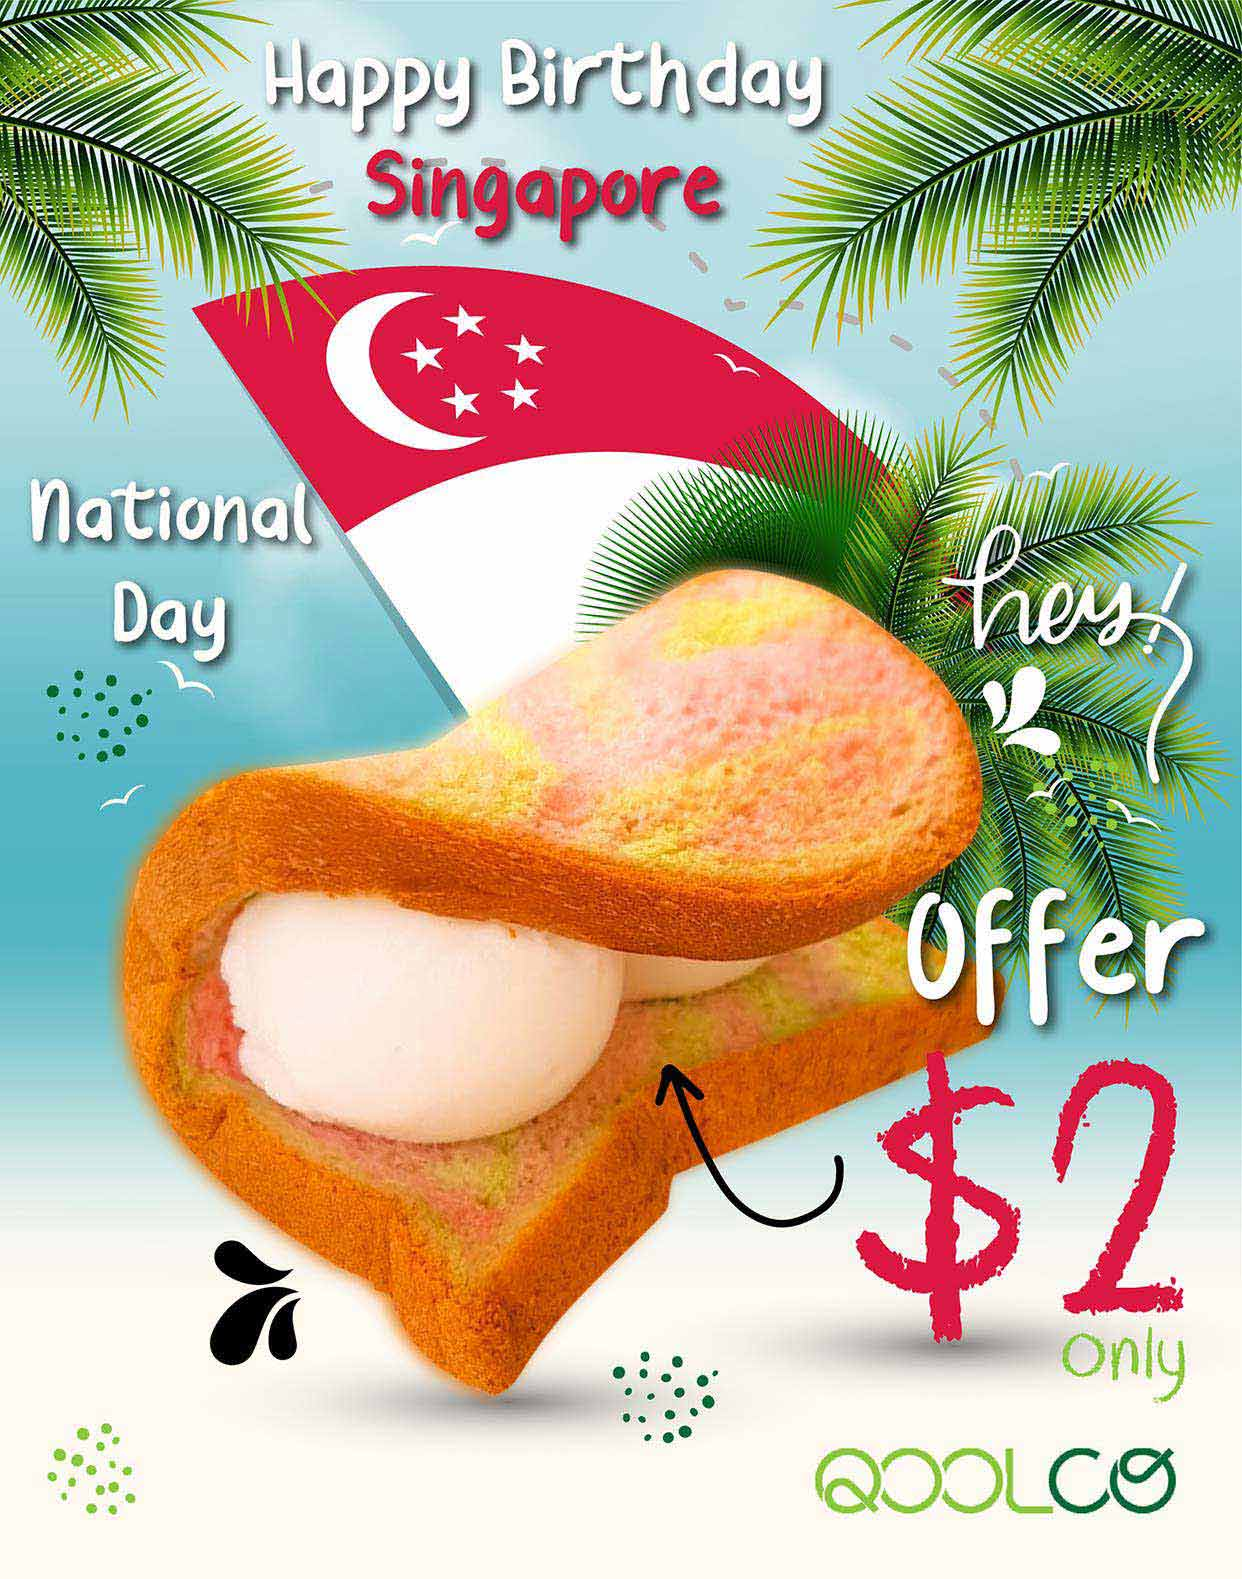 Flyer Design for Singapore National Day Celebration